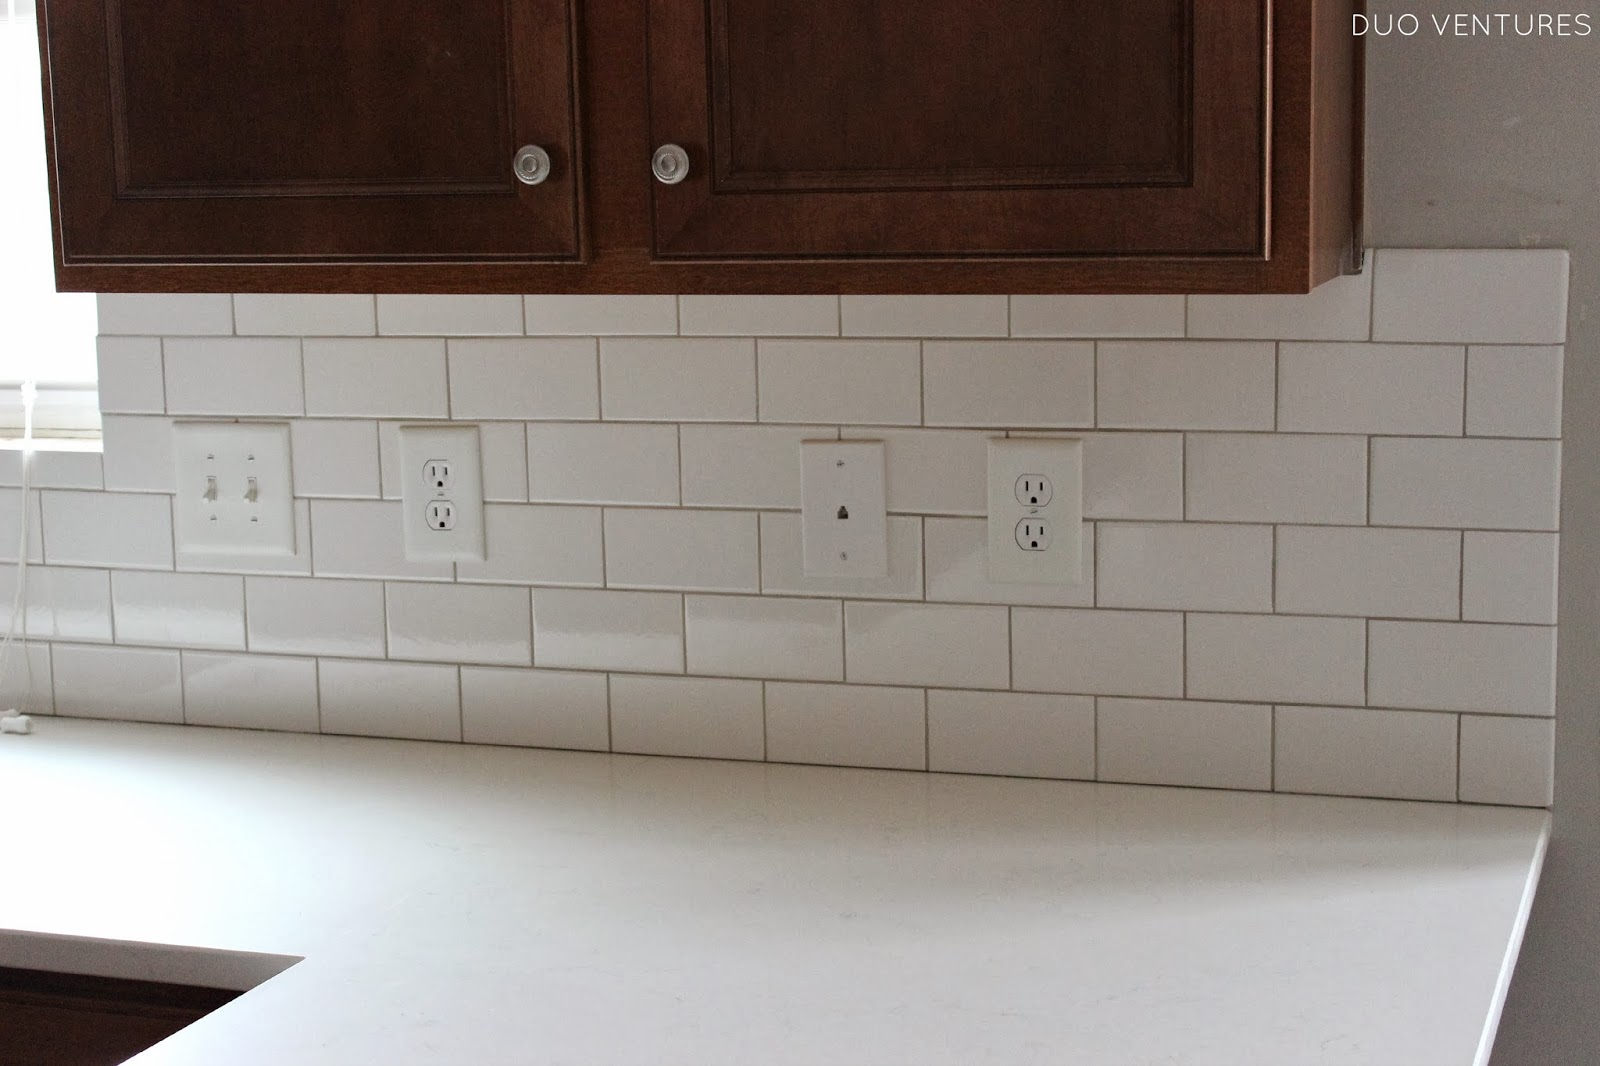 Off White Subway Tile Duo Ventures Kitchen Update Grouting Amp Caulking Subway